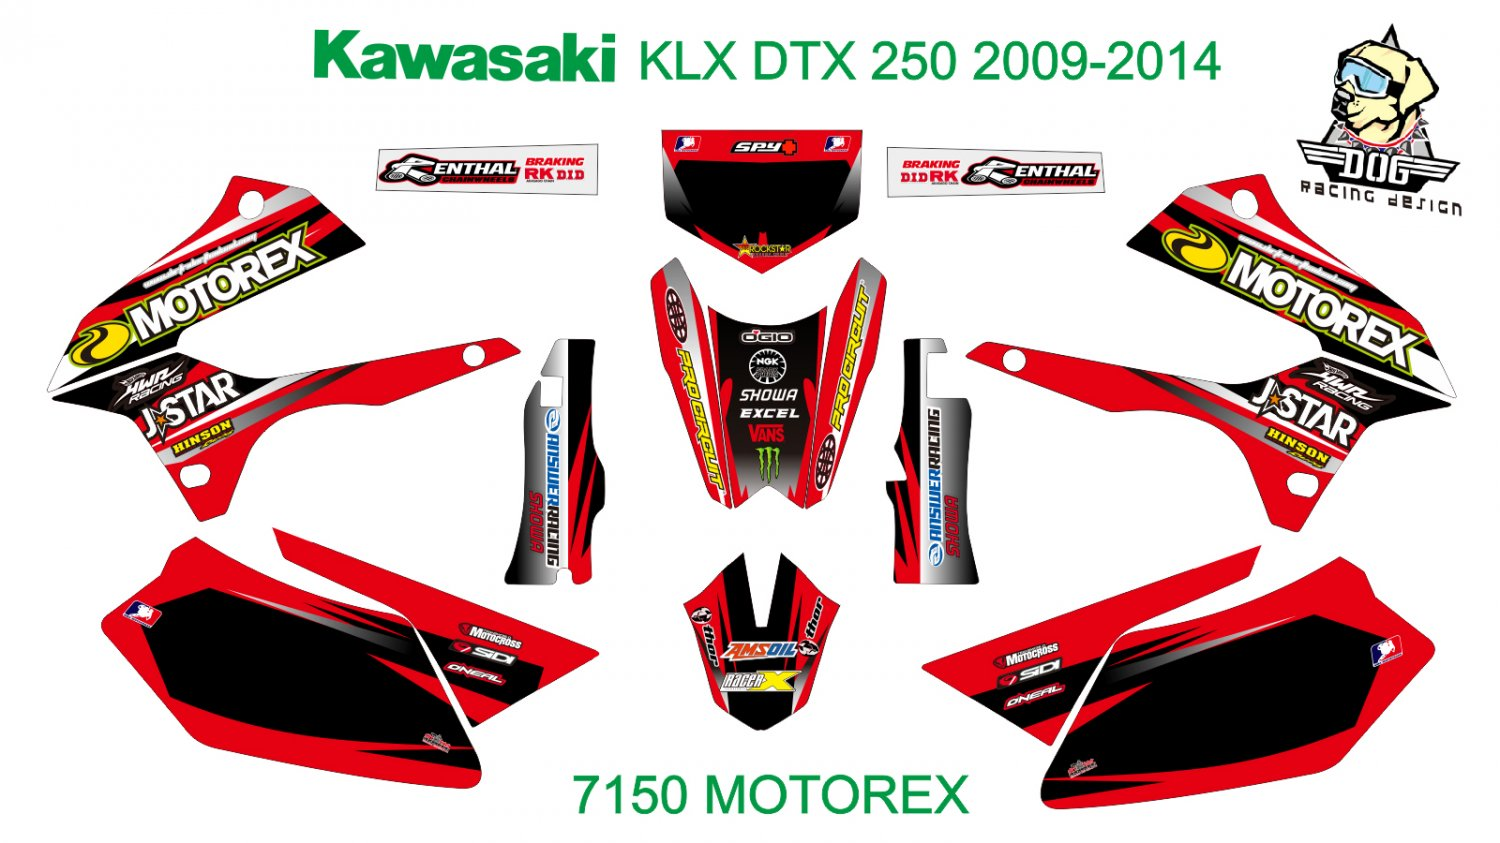 KAWASAKI KLX DTX 250 2009-2014 GRAPHIC DECAL KIT CODE.7150